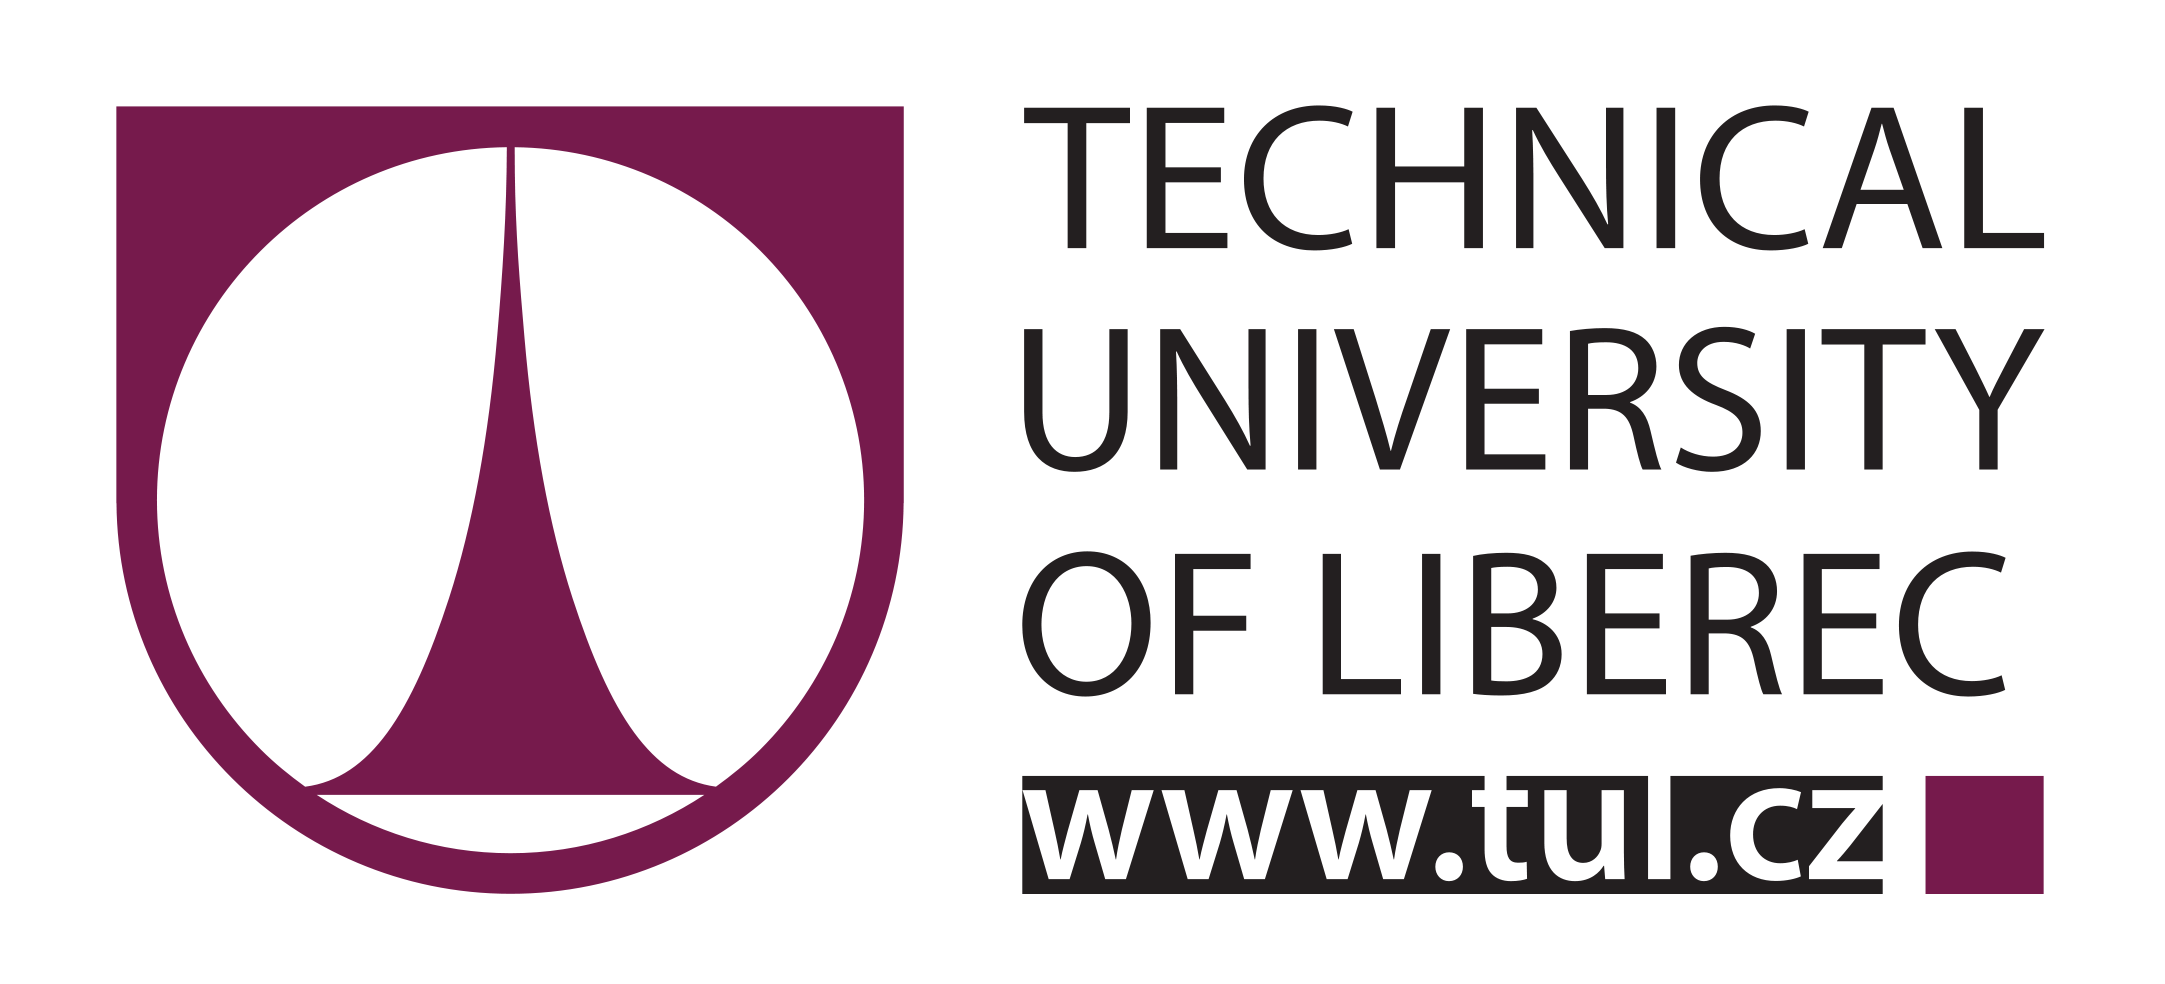 Tech College of Liberc.png